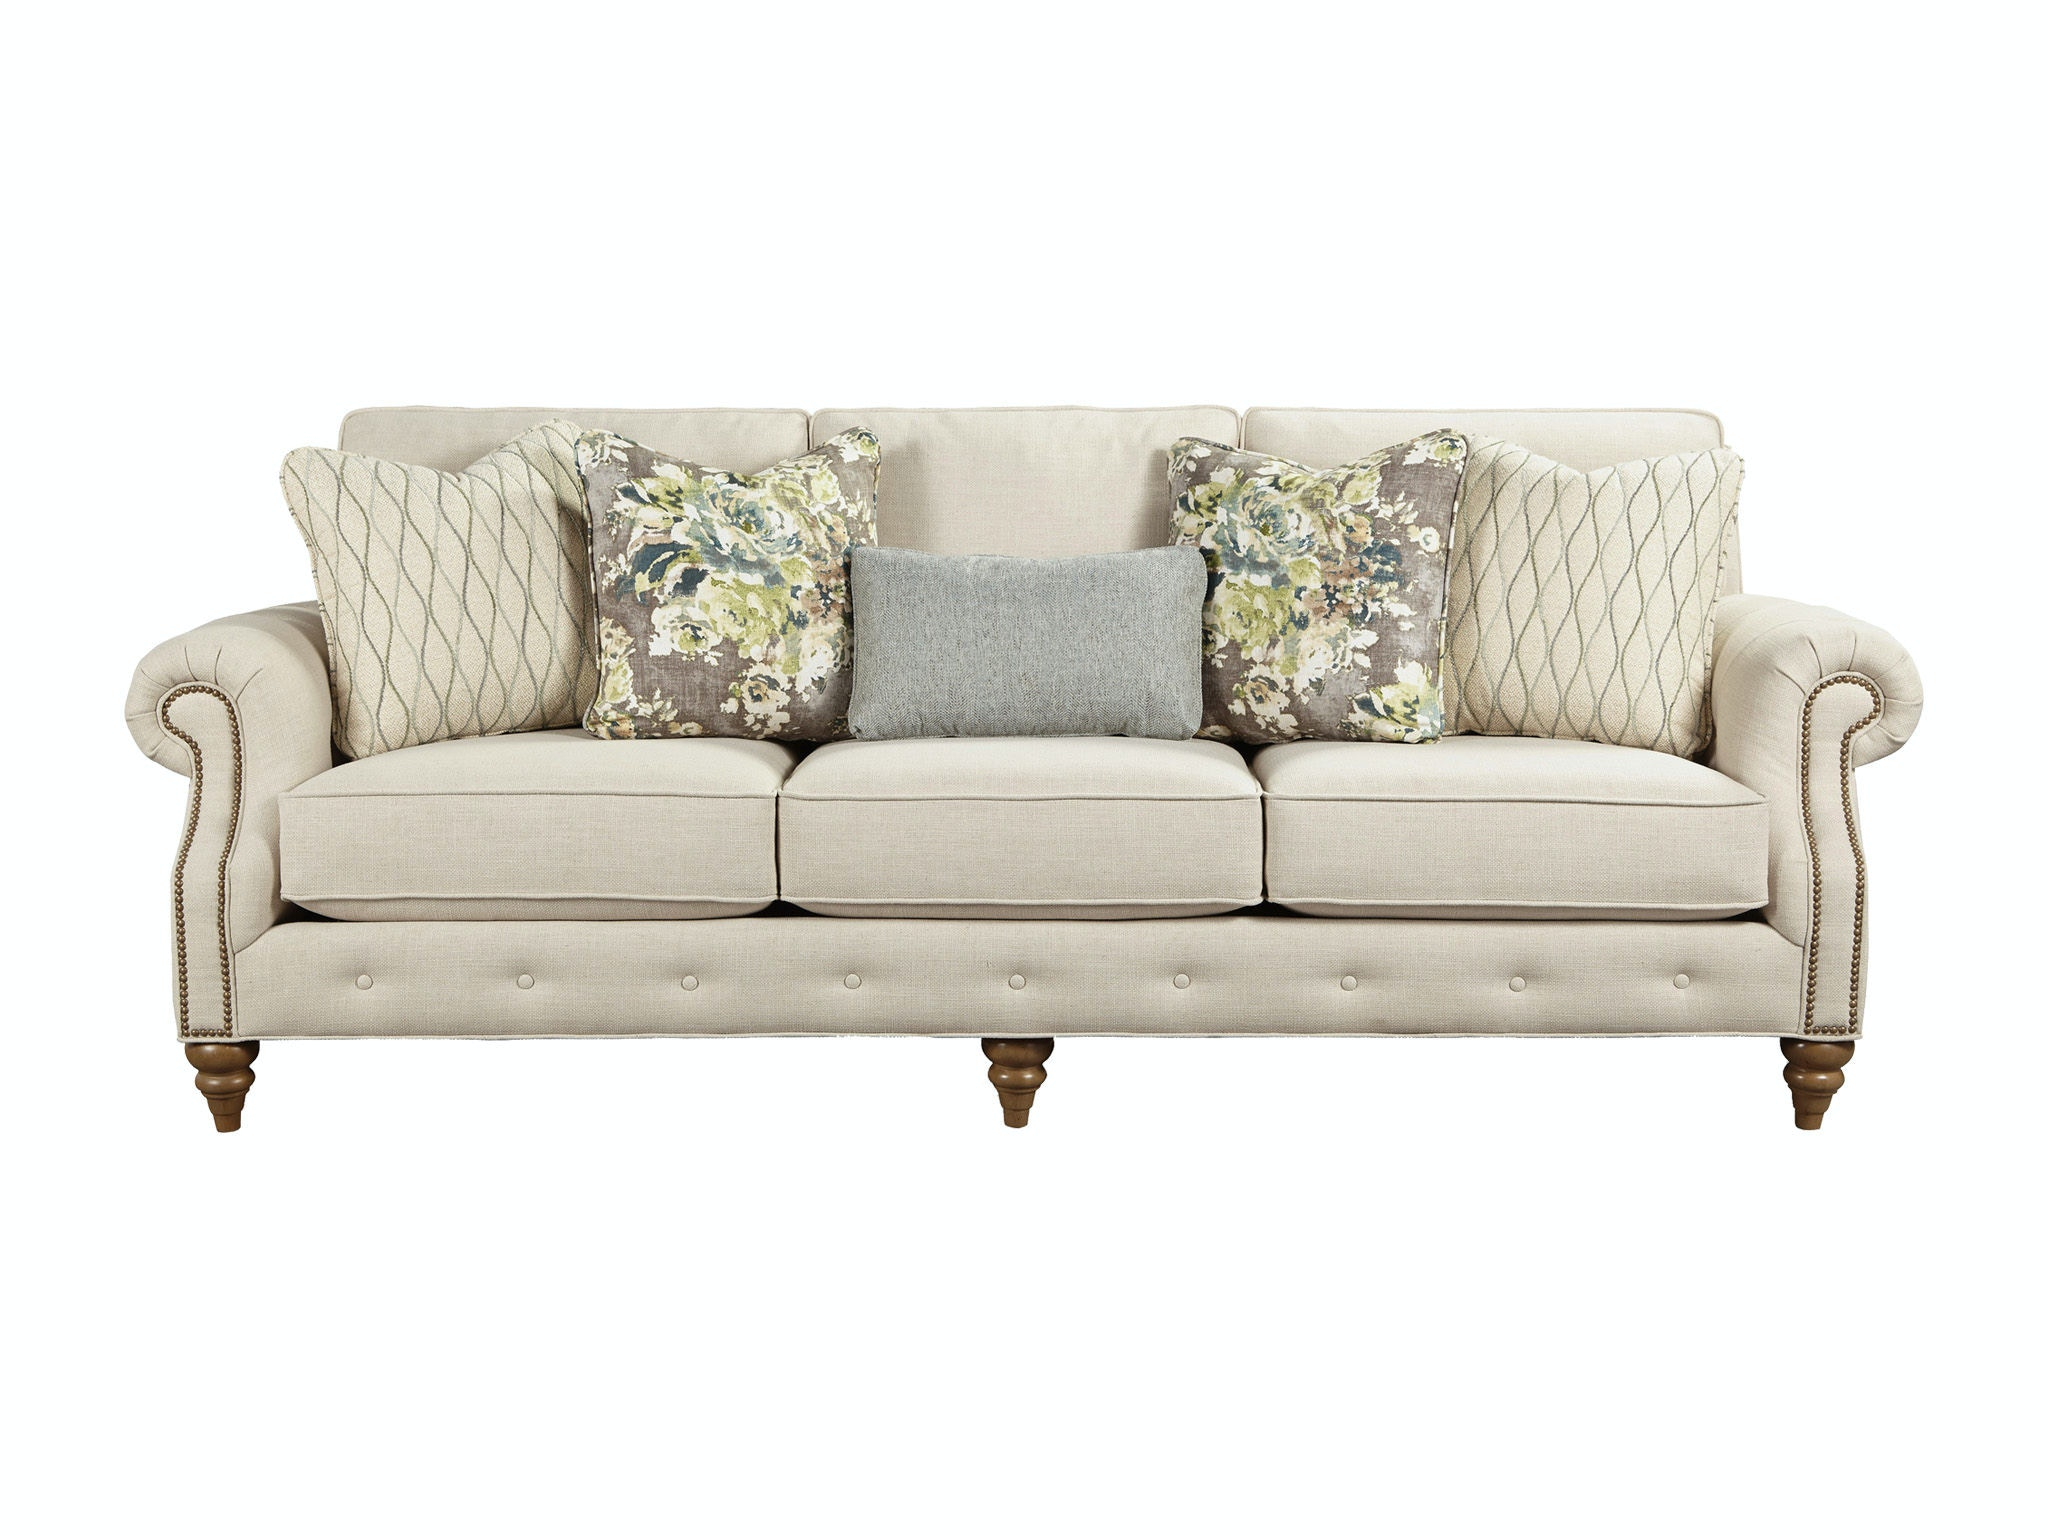 Superbe P763250BD. Sofa · P763250BD · Paula Deen By Craftmaster